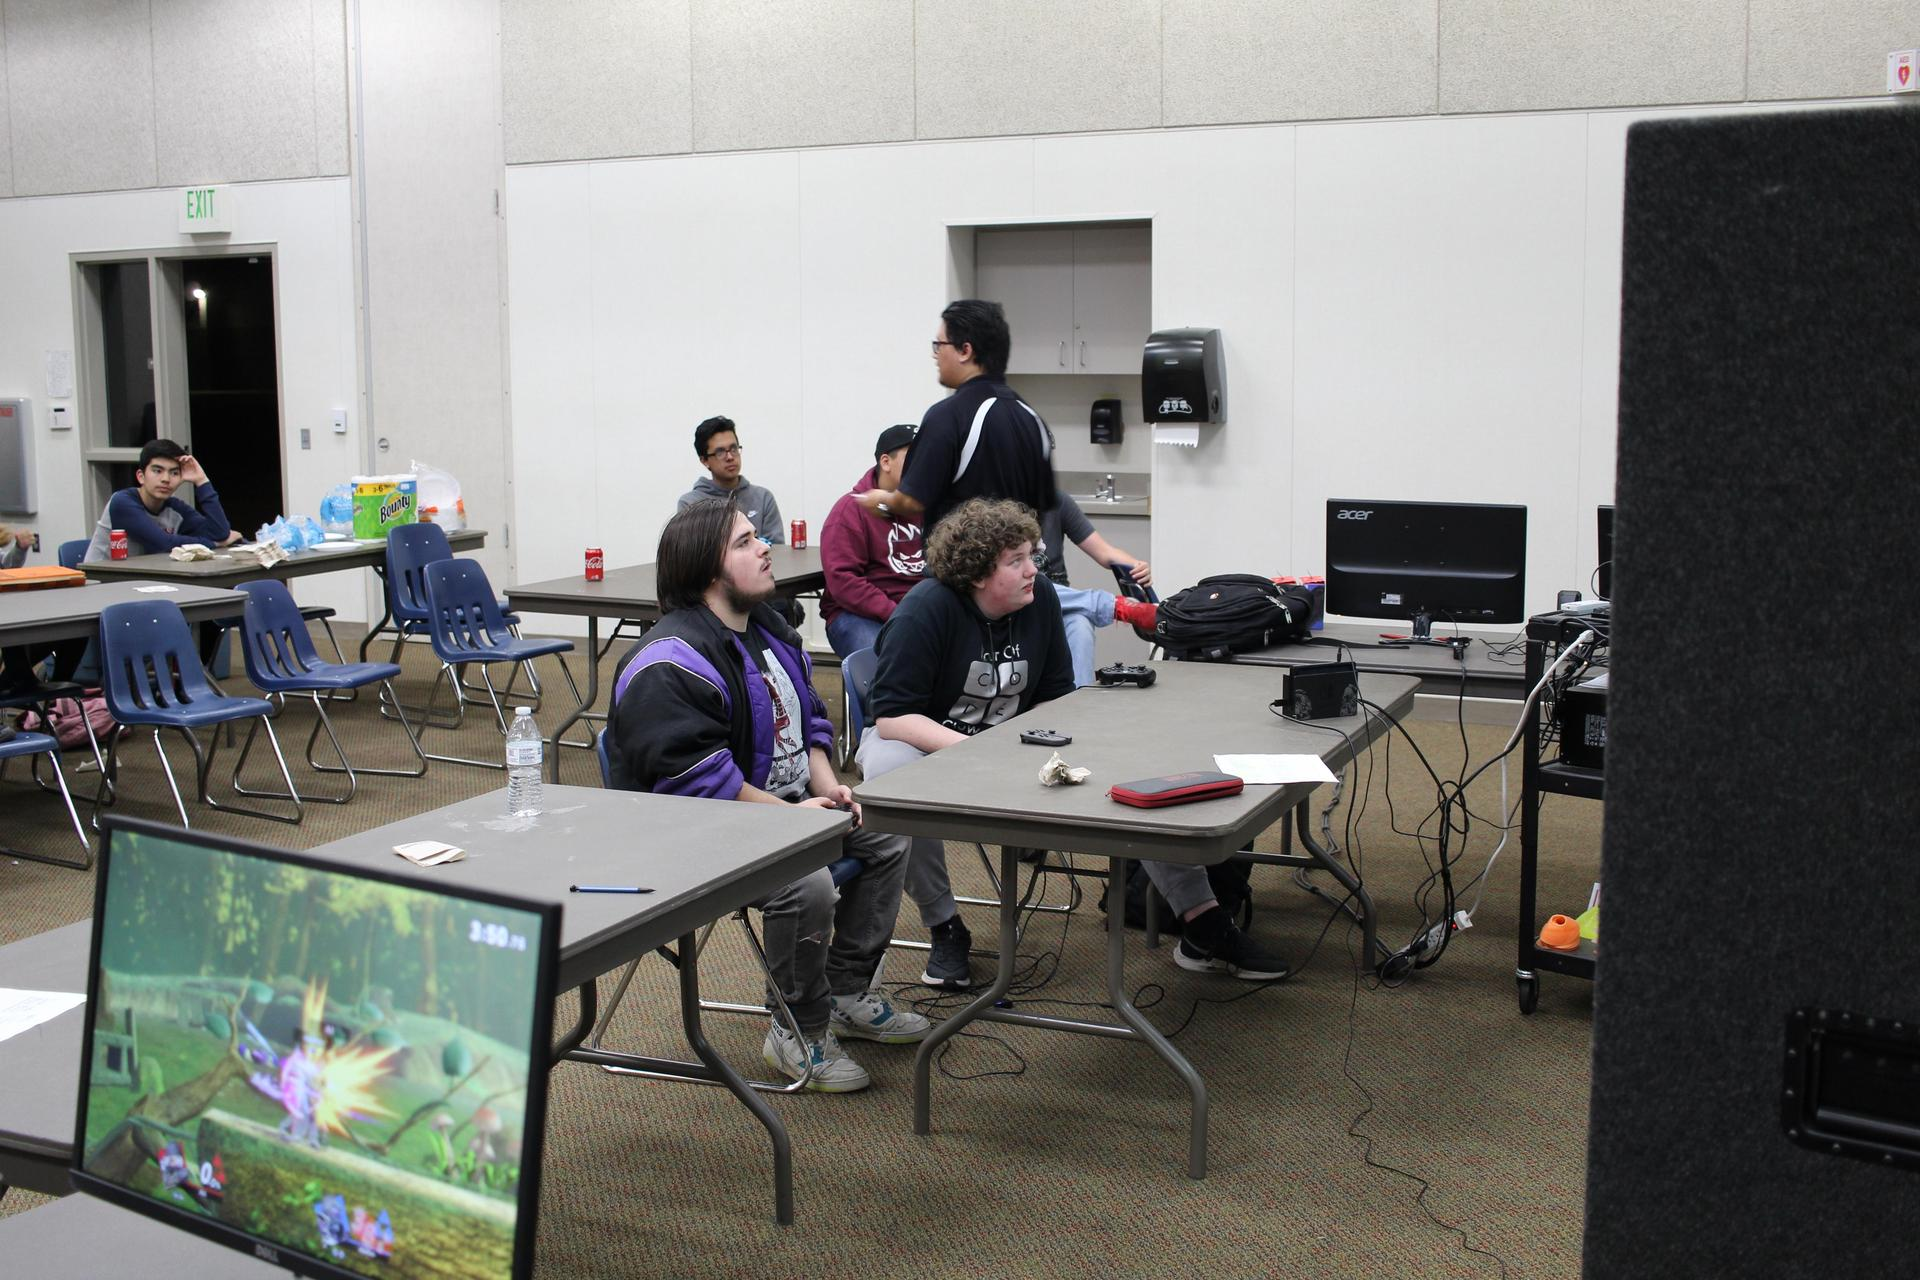 students having fun at the multi player tournament